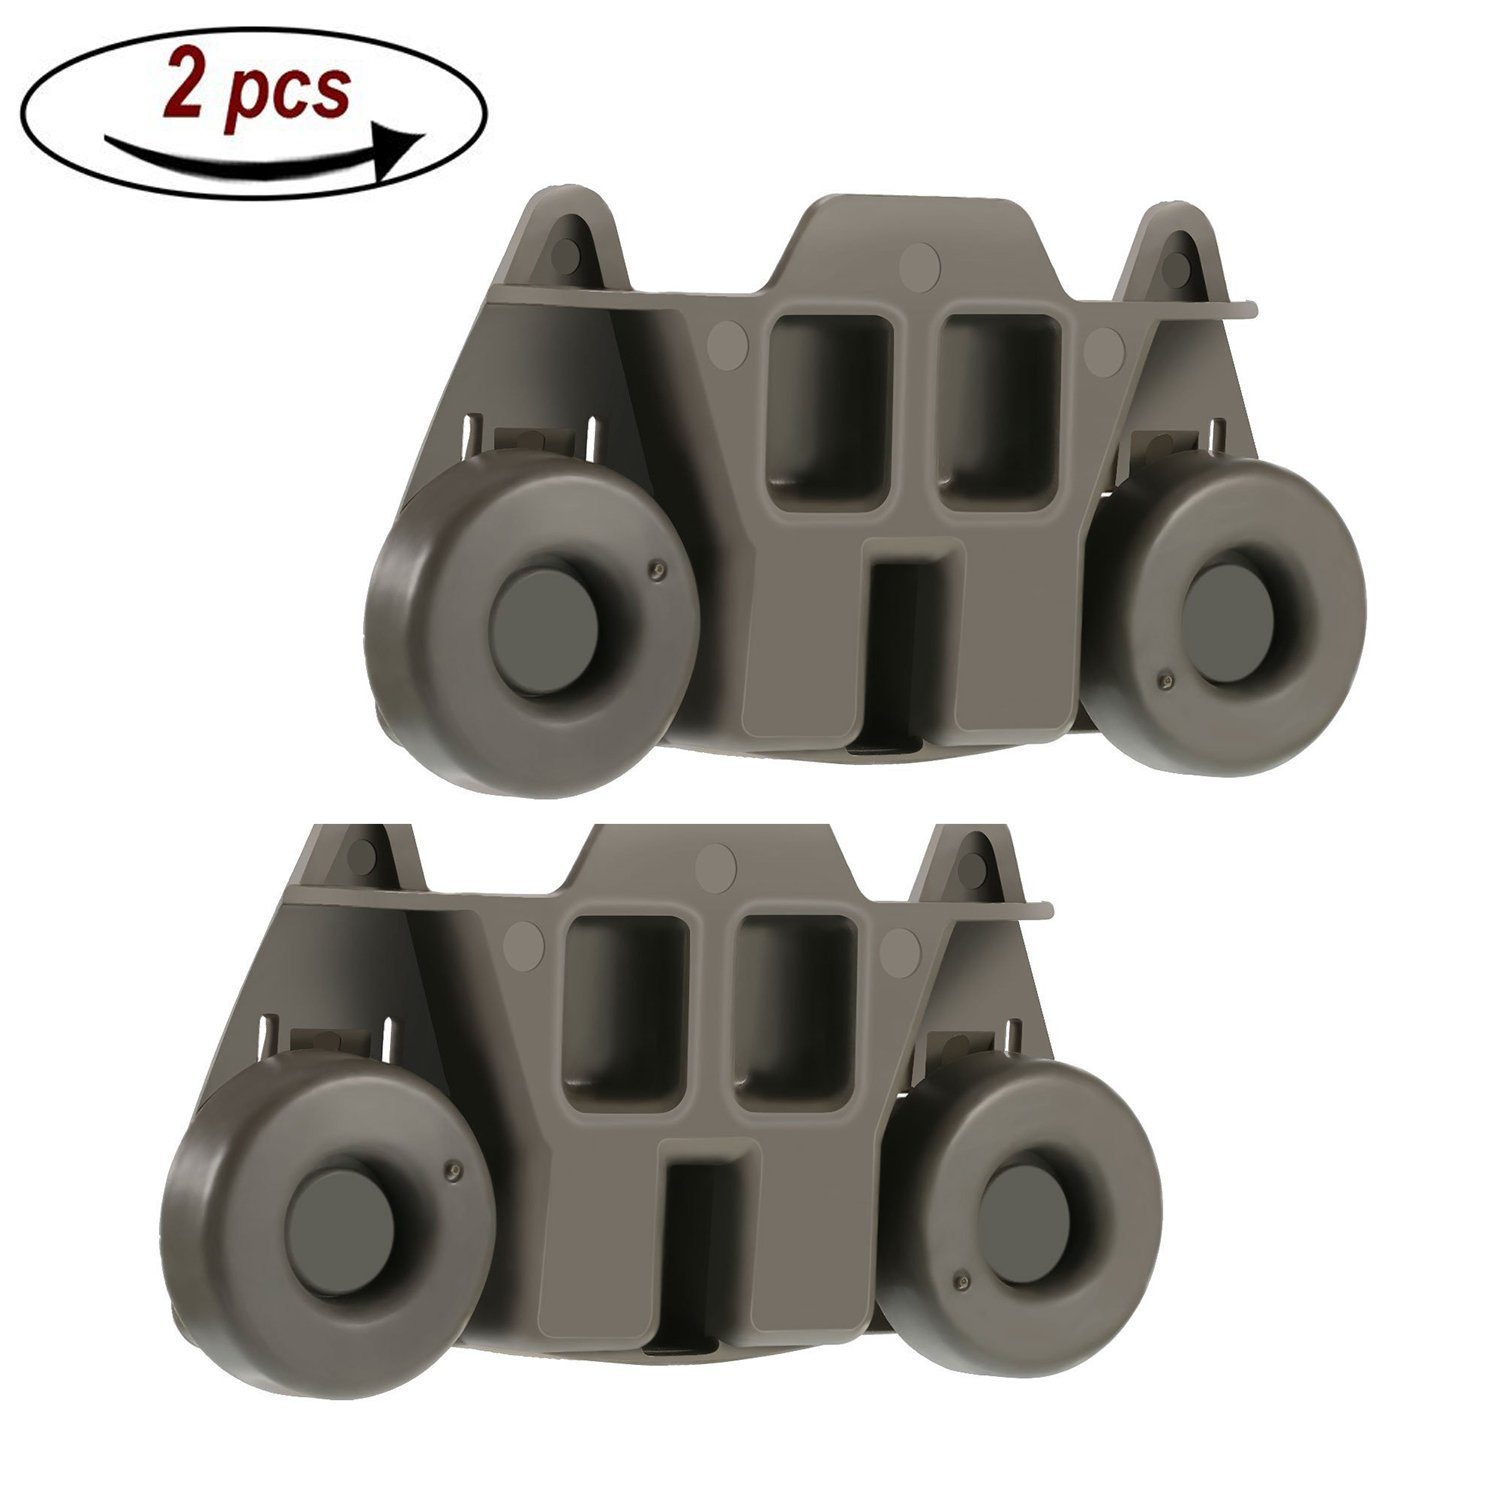 2 Packs W10195416(Upgraded) Lower Dishwasher Wheel Part Assembly Replacement for Maytag/Kitchen Aid/kitchenaid/Whirlpool/Kenmore Dish Rack Replaces AP5983730, W10195416V, PS11722152